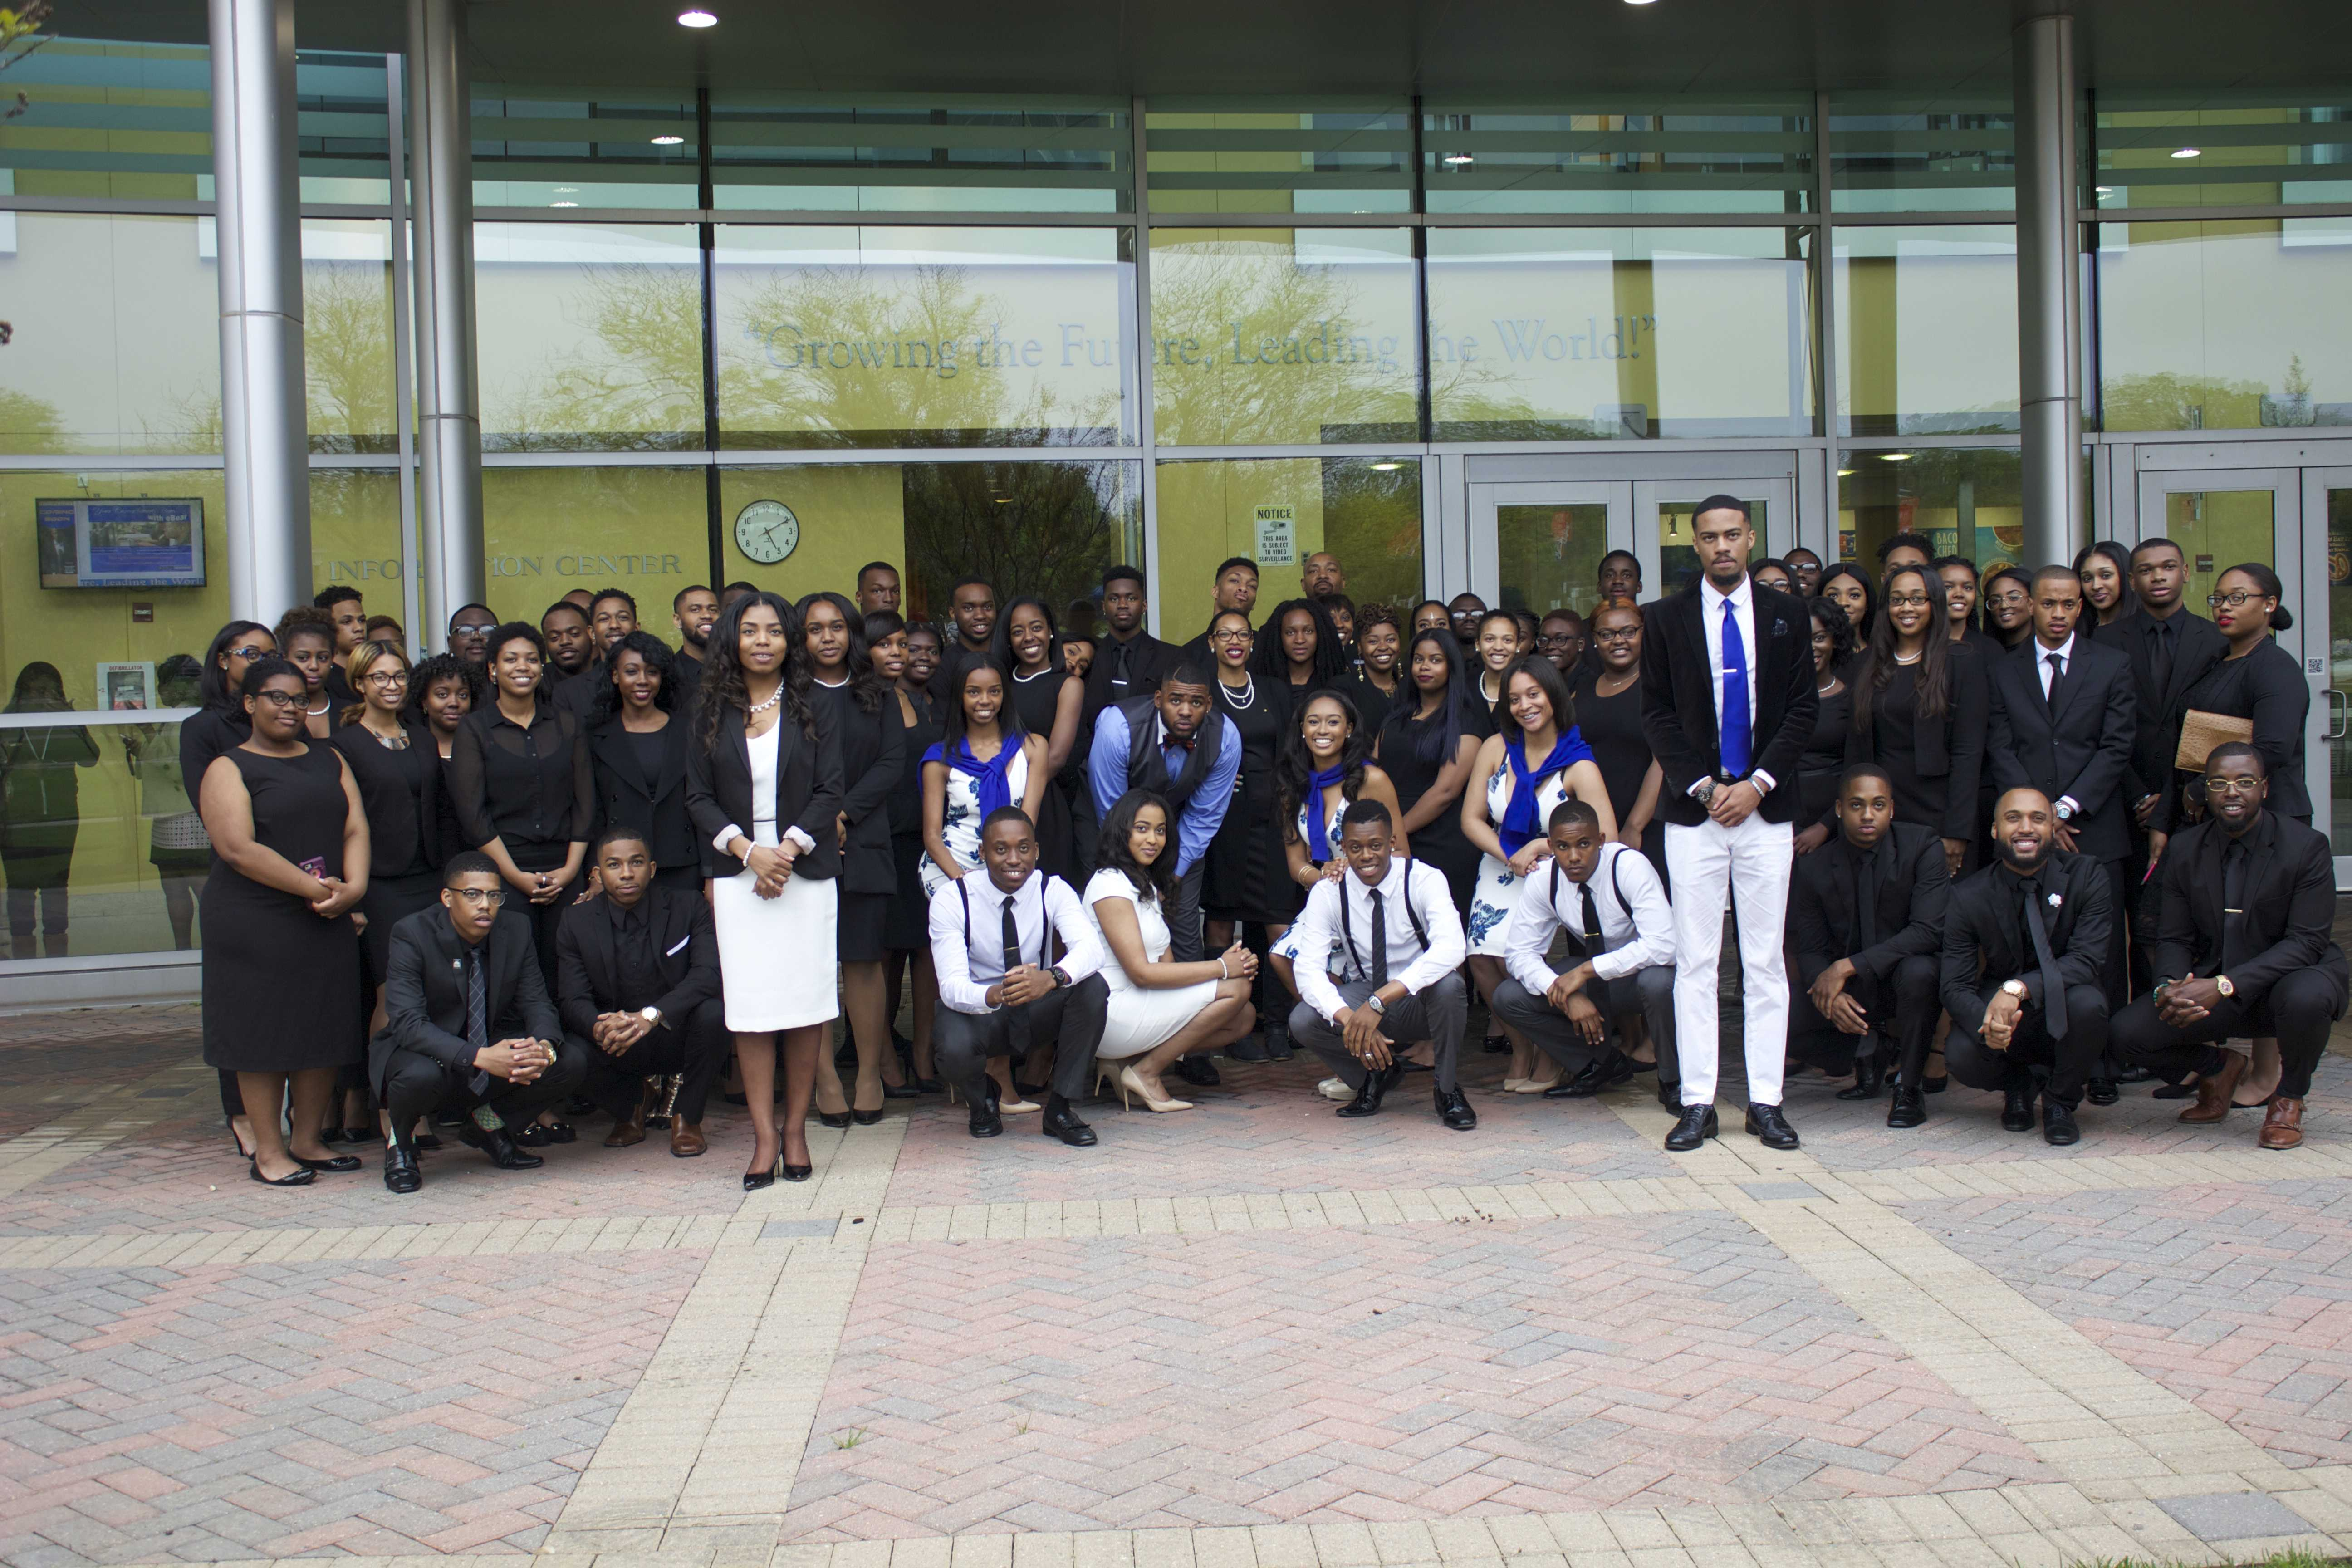 The 2016-2017 Student Government Association at Inauguration. Dreamteam Administration. Photo credit: Tramon Lucas, Managing Editor